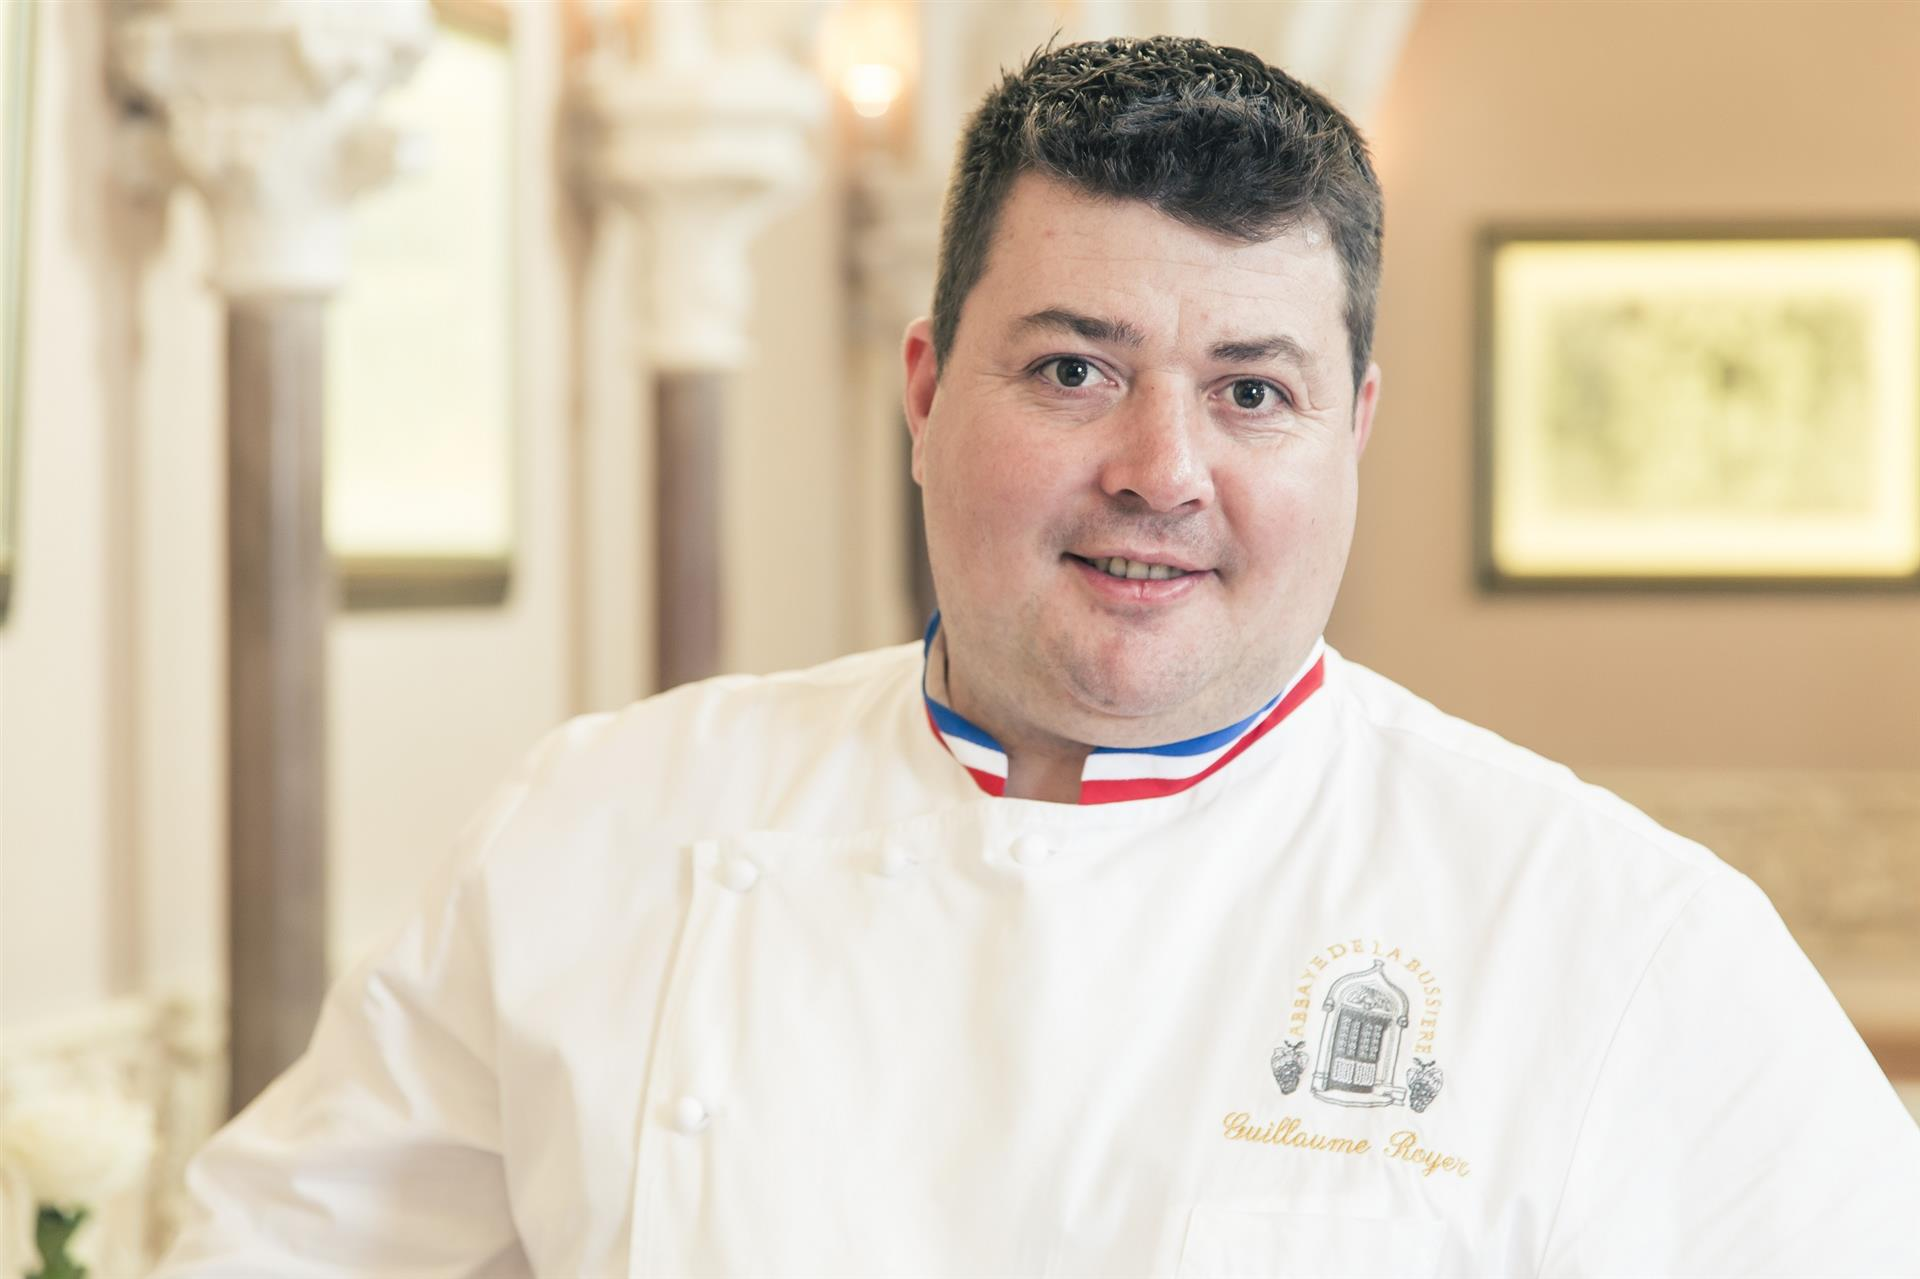 Guillaume Royer chef de cuisine - Philippe Giraud